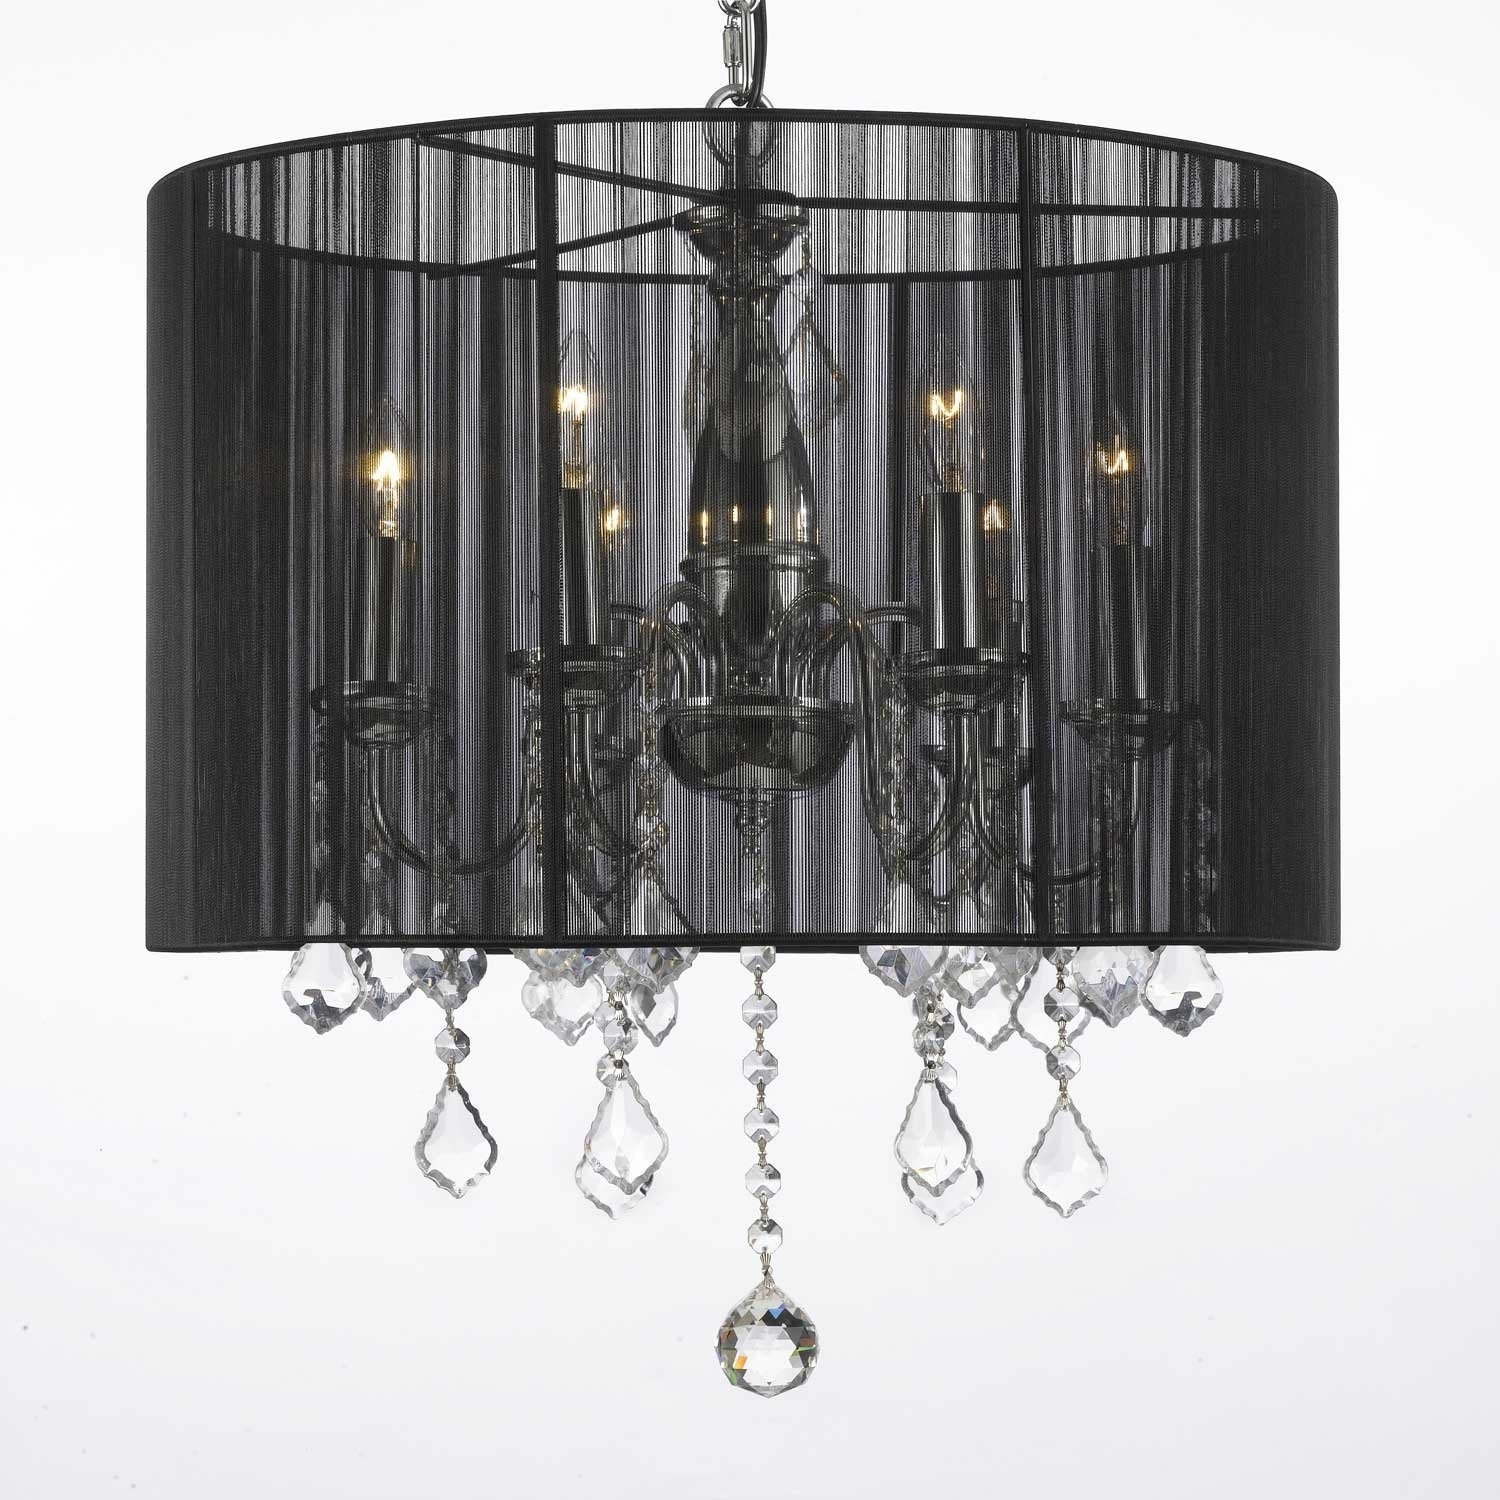 Crystal Swag Plug In Chandelier Lighting With Shade & 14 Feet